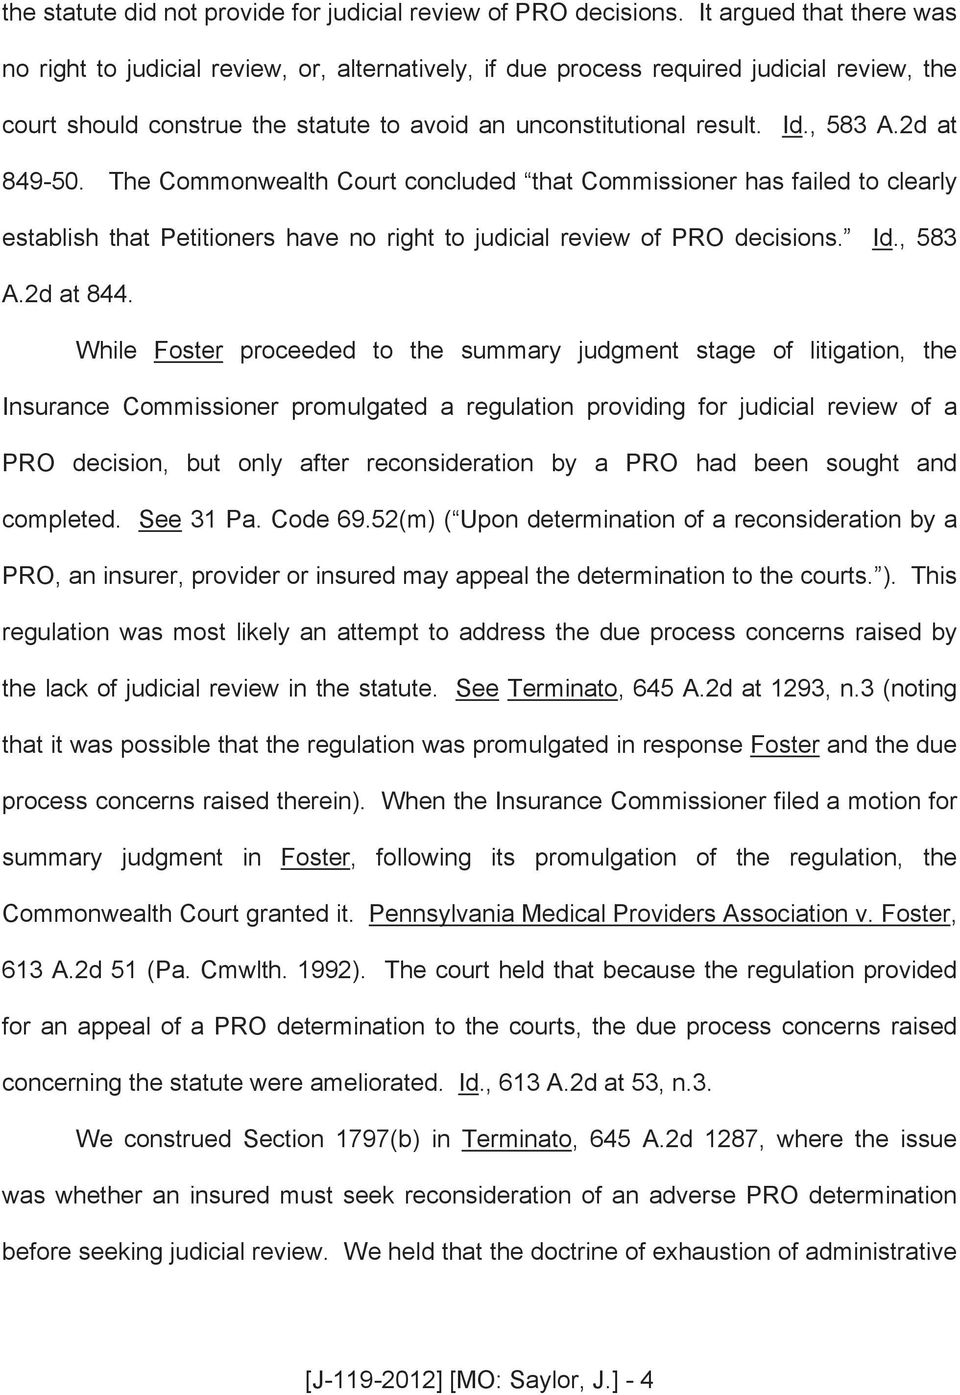 2d at 849-50. The Commonwealth Court concluded that Commissioner has failed to clearly establish that Petitioners have no right to judicial review of PRO decisions. Id., 583 A.2d at 844.